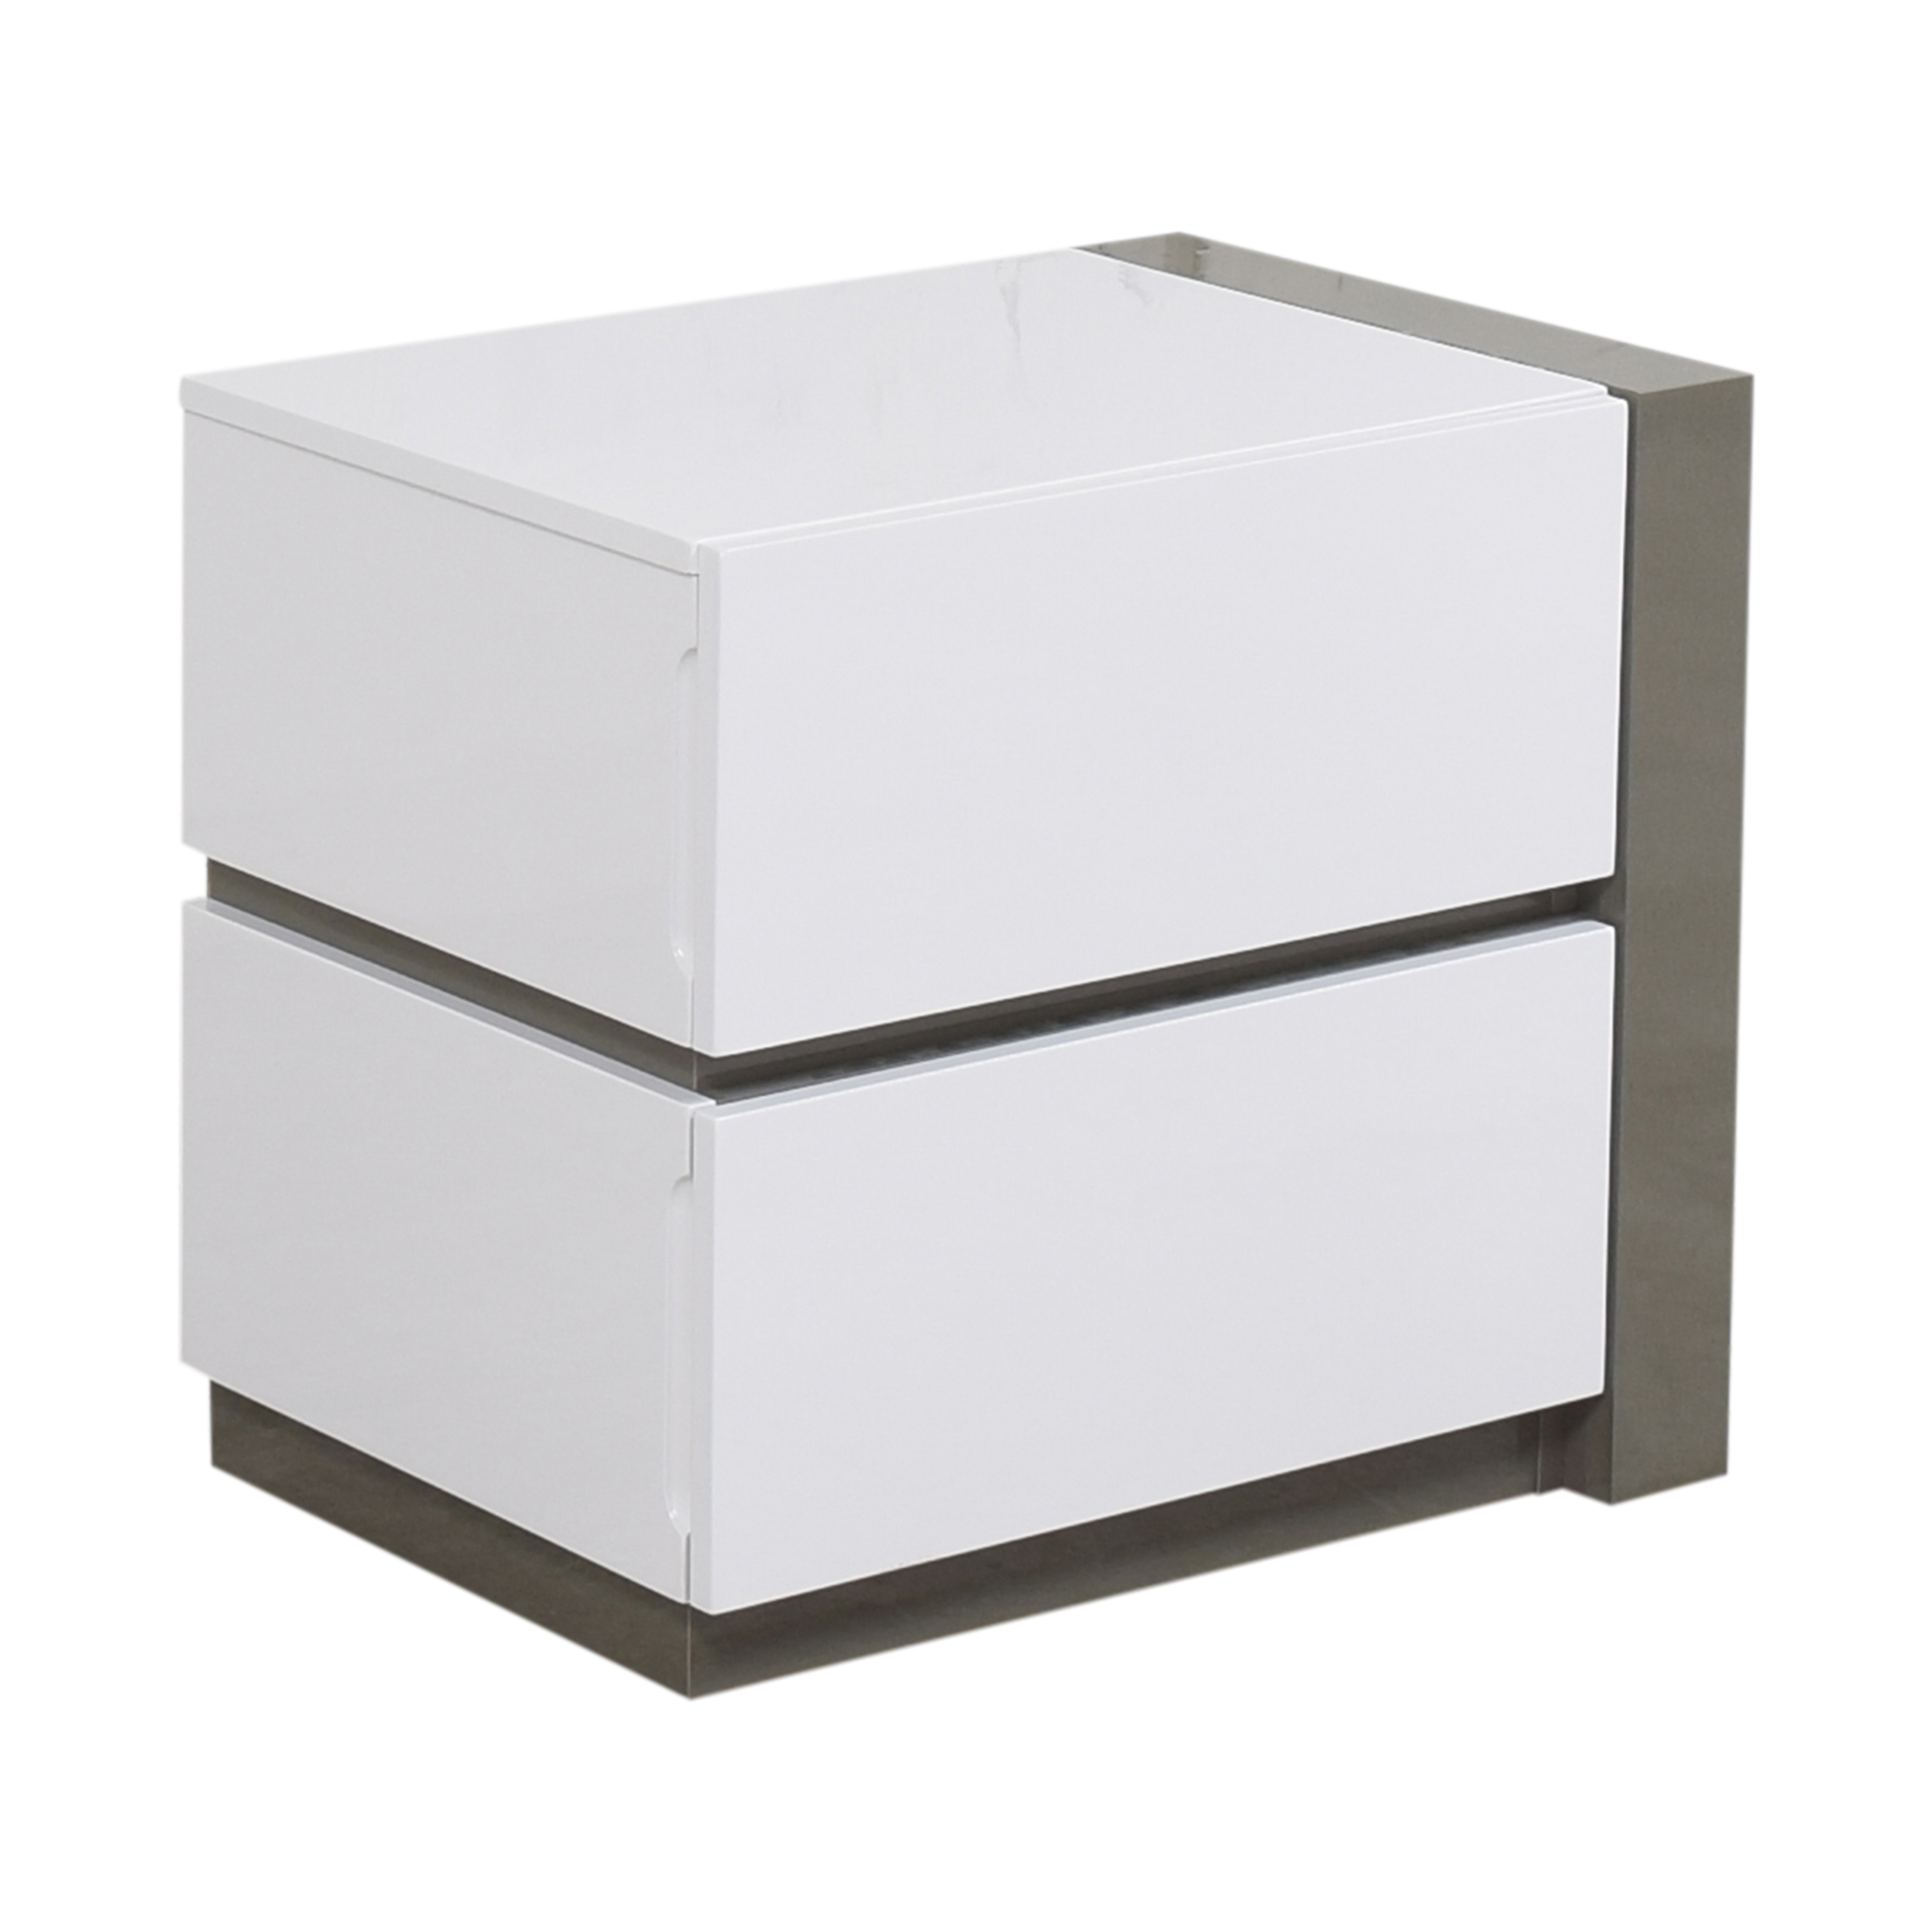 Chintaly Imports Chintaly Imports Manila Right Nightstand gray and white